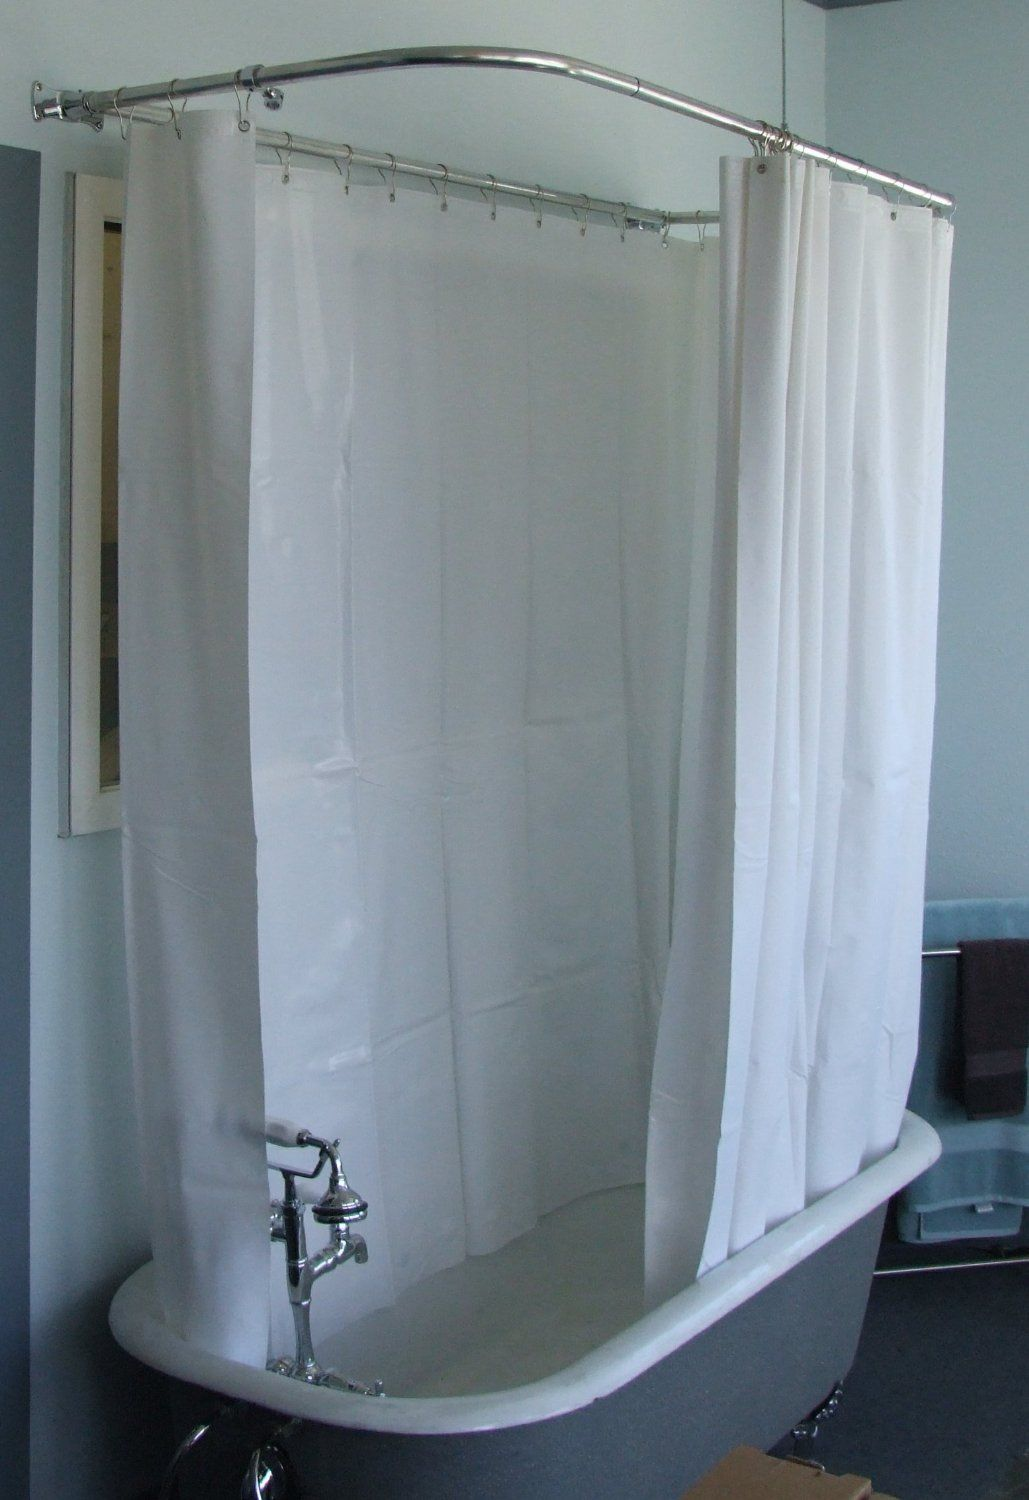 extra large clawfoot tub. Extra Large Clawfoot Tub Shower Curtains by plumbmagic 180  shower curtain for clawfoot tubs 55 For our brownstone